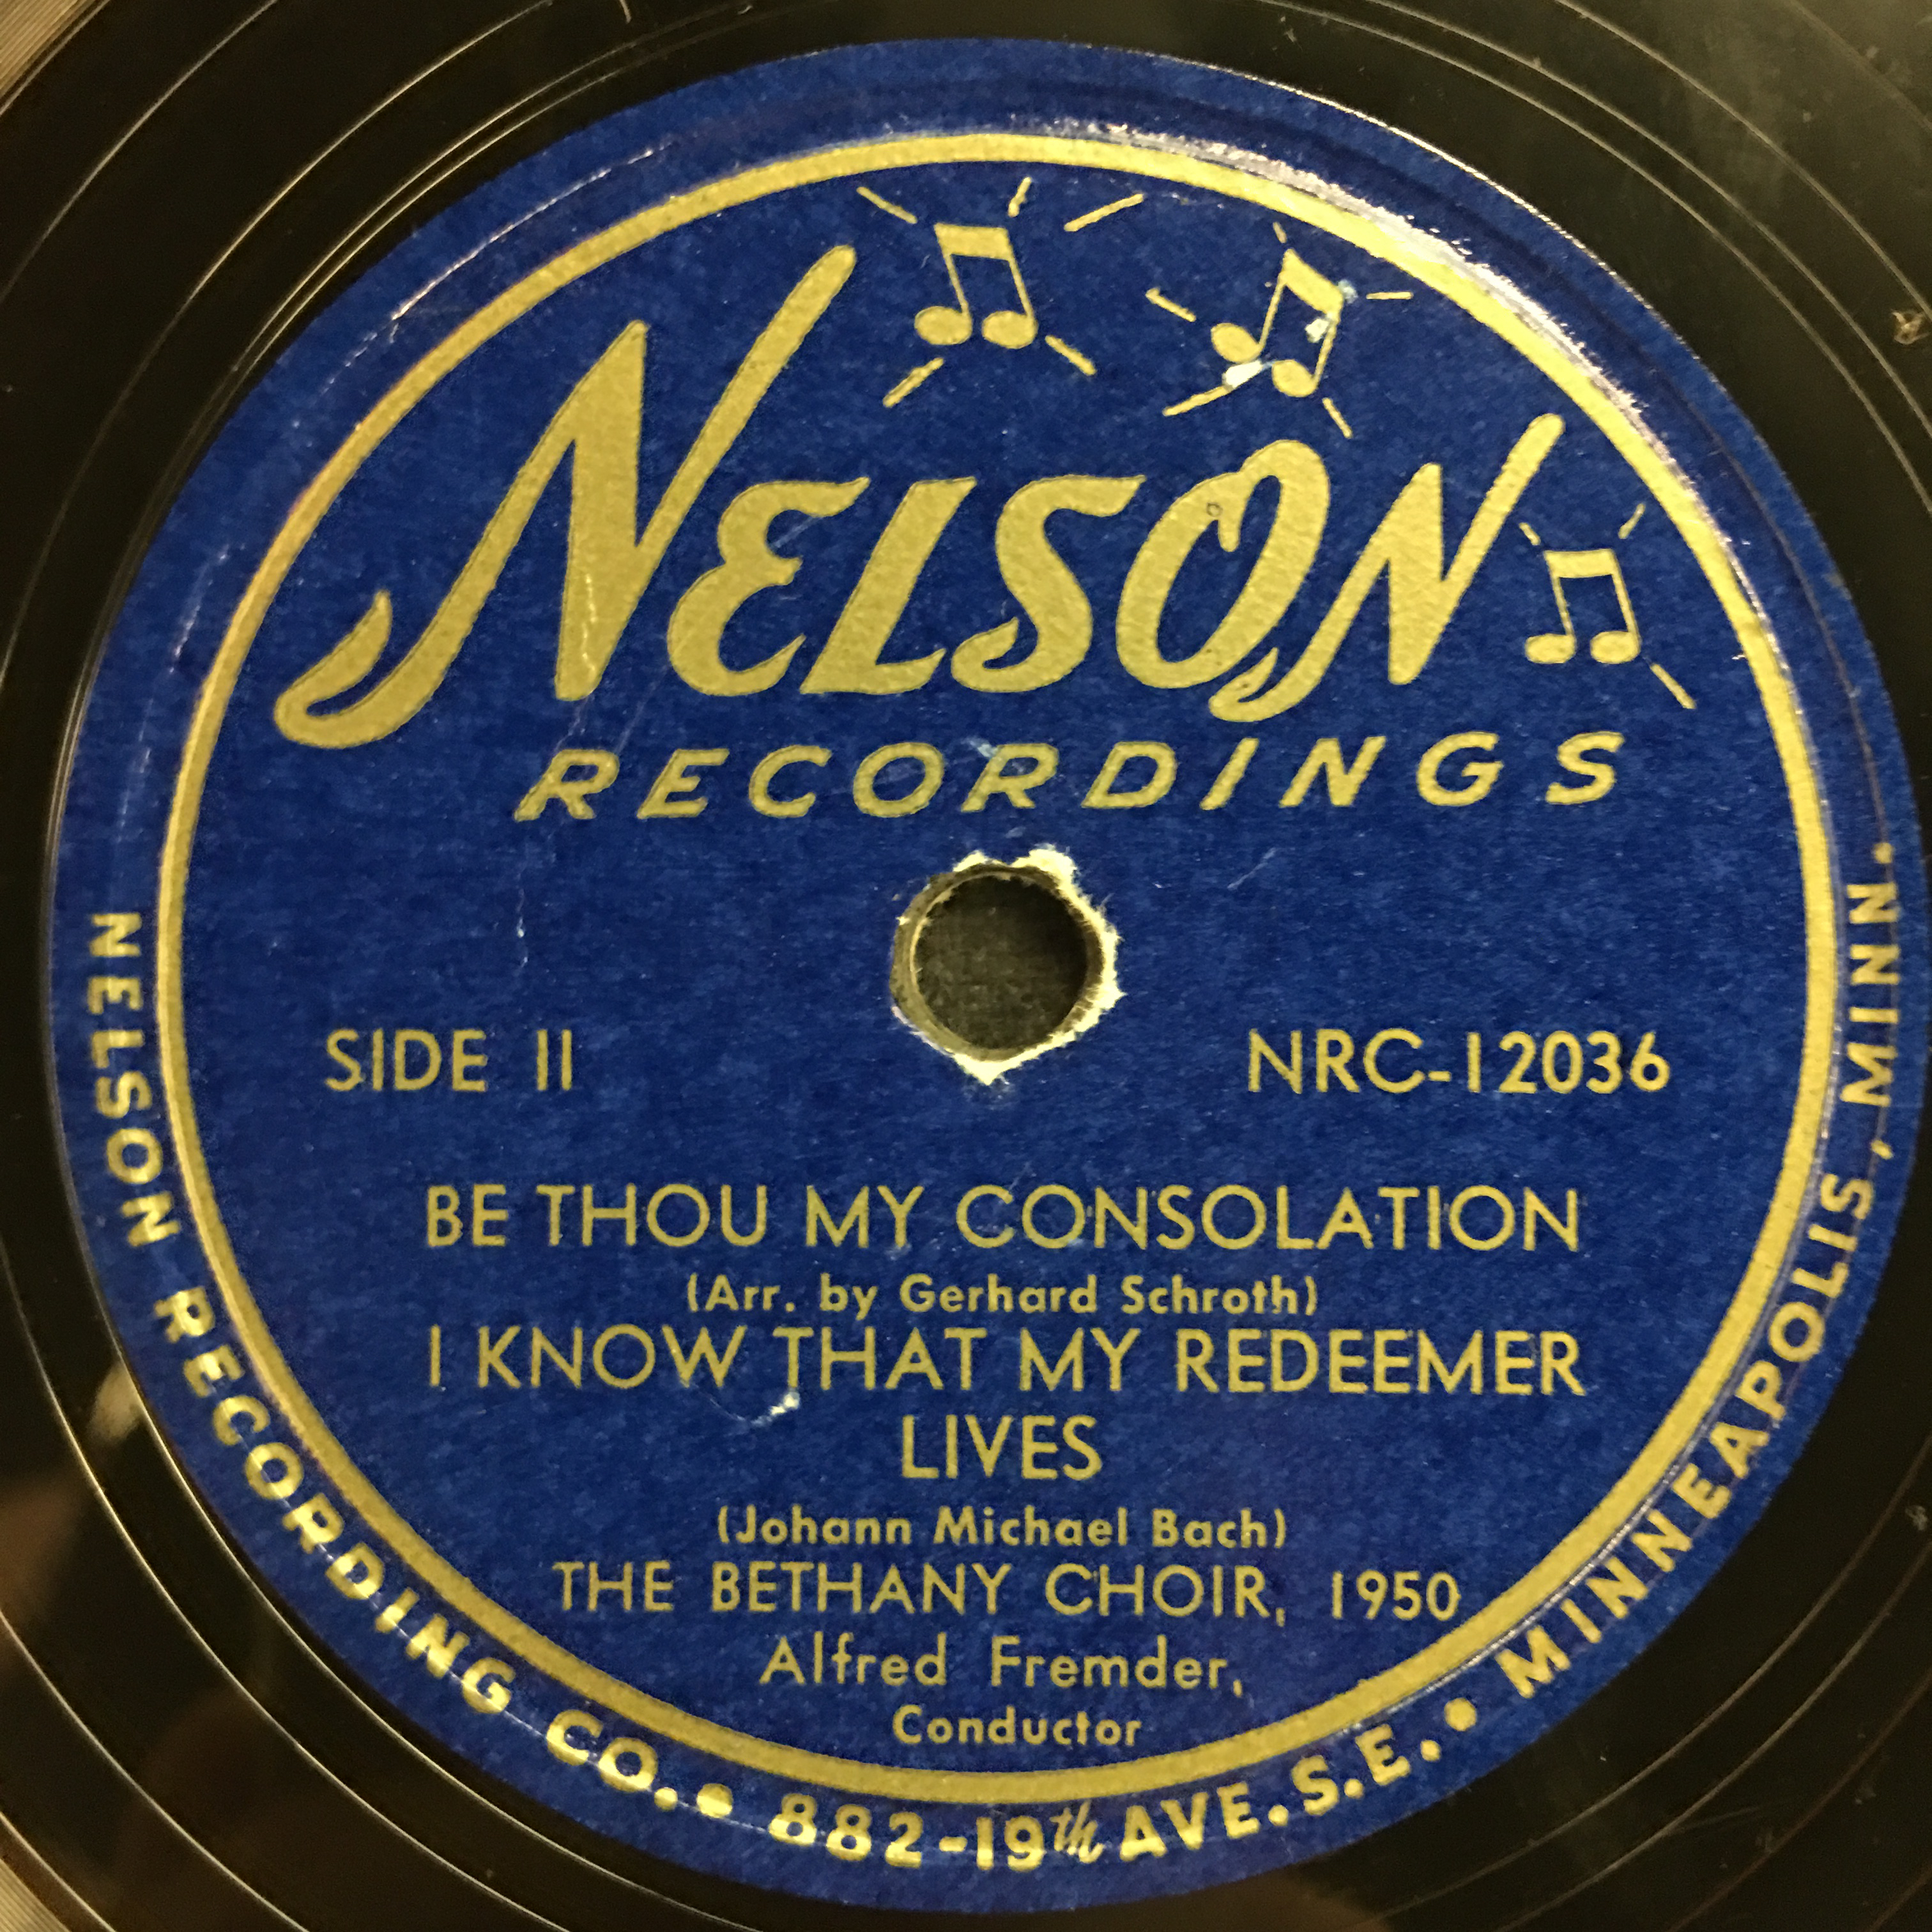 The Bethany Choir 1950: Sing Praises, Ye Faithful Vinyl 1 Side 2